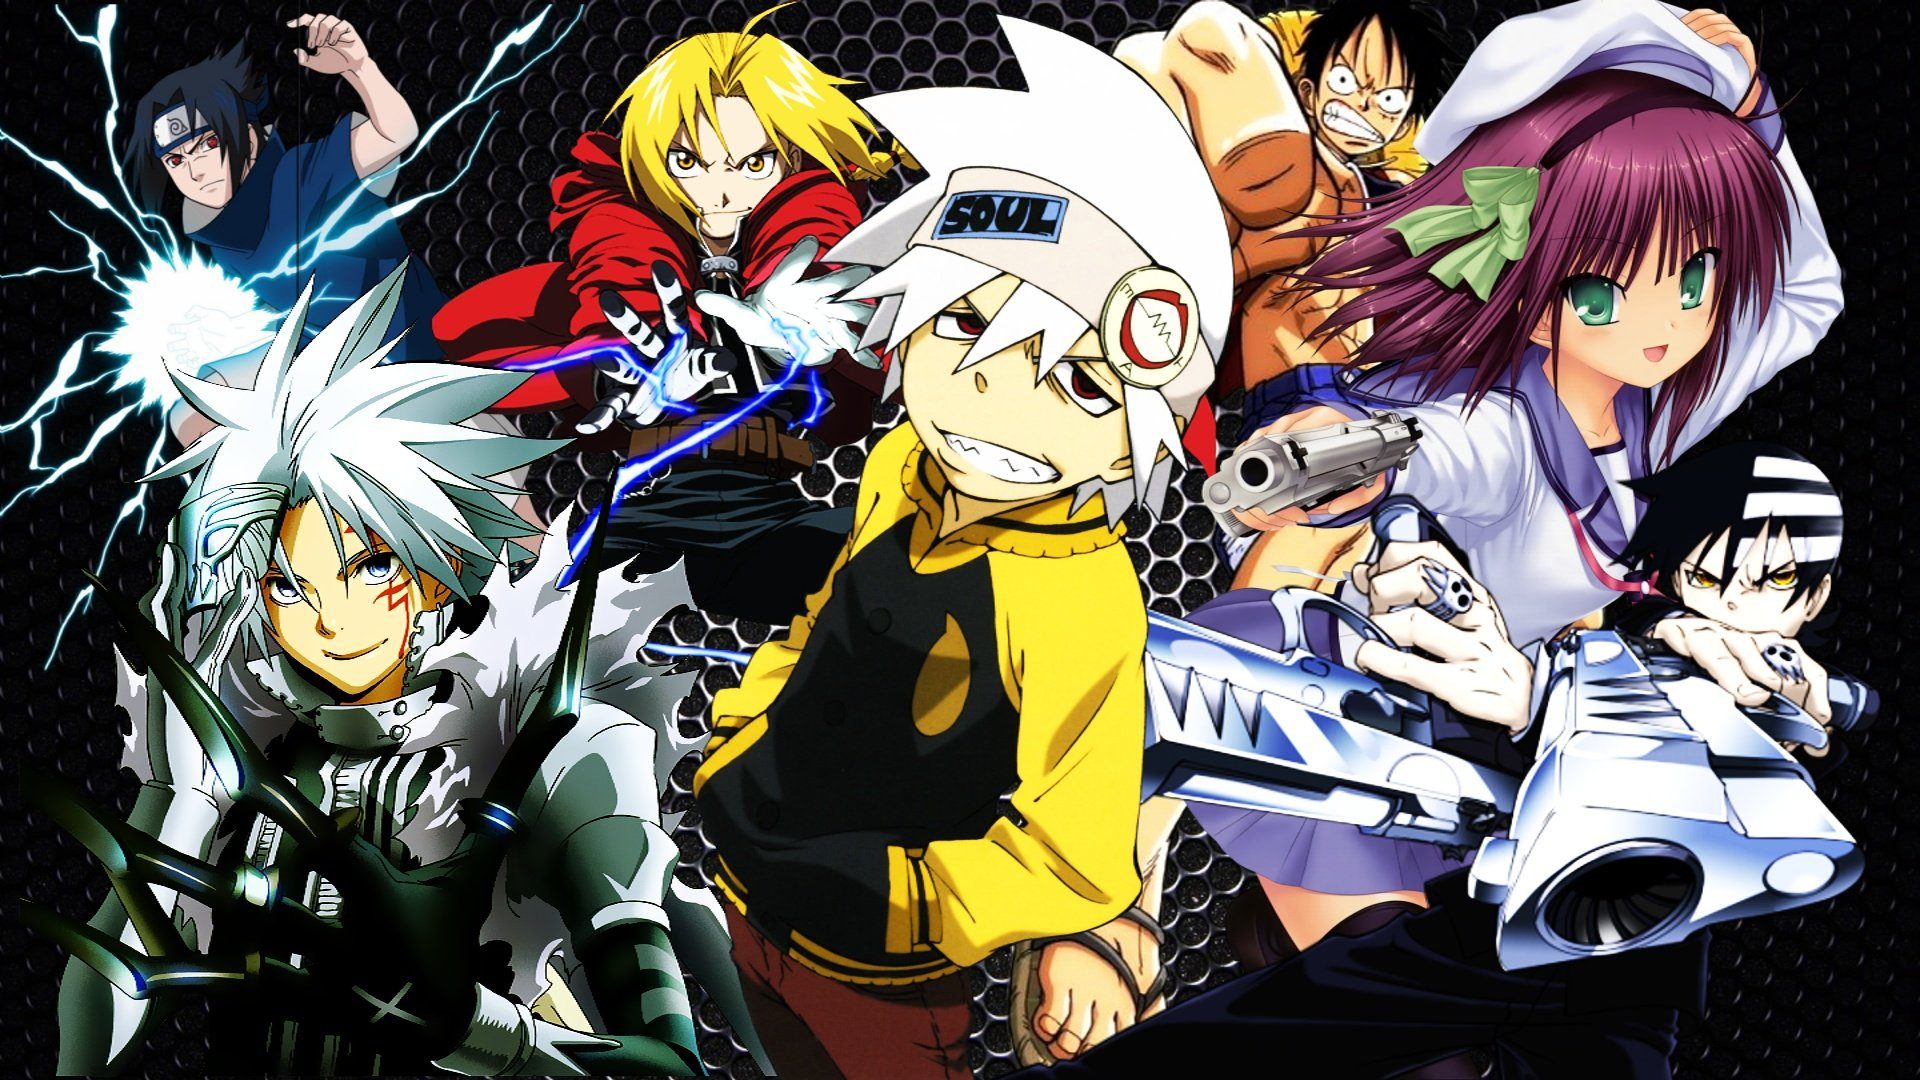 Anime Backgrounds 17179 1920x1080 px HDWallSourcecom 1920x1080